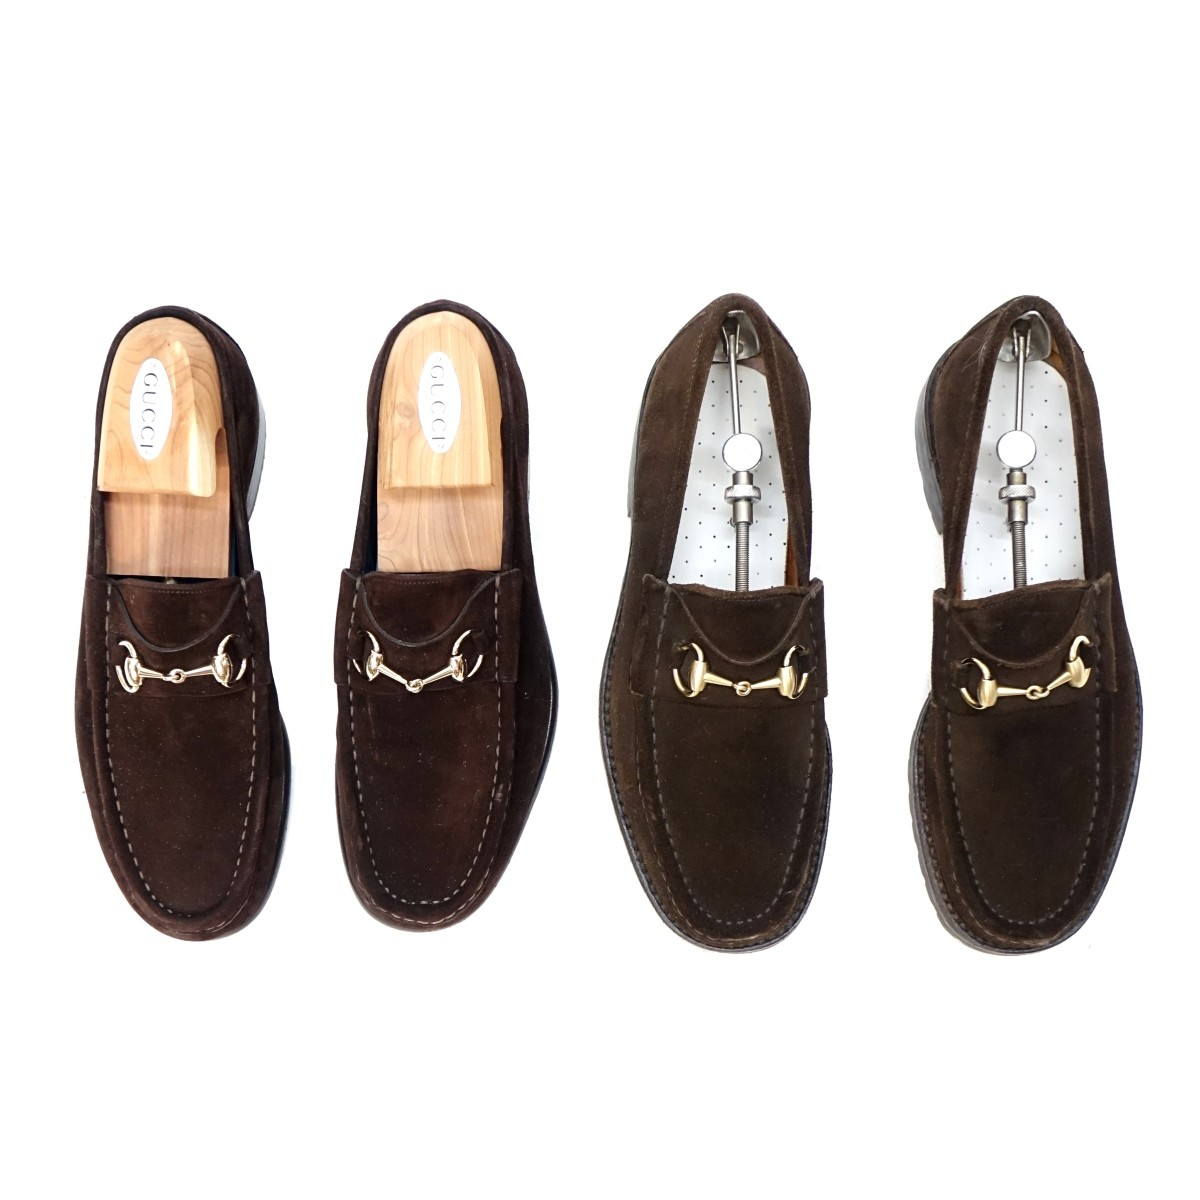 Pair of Gucci Loafers with Stretchers